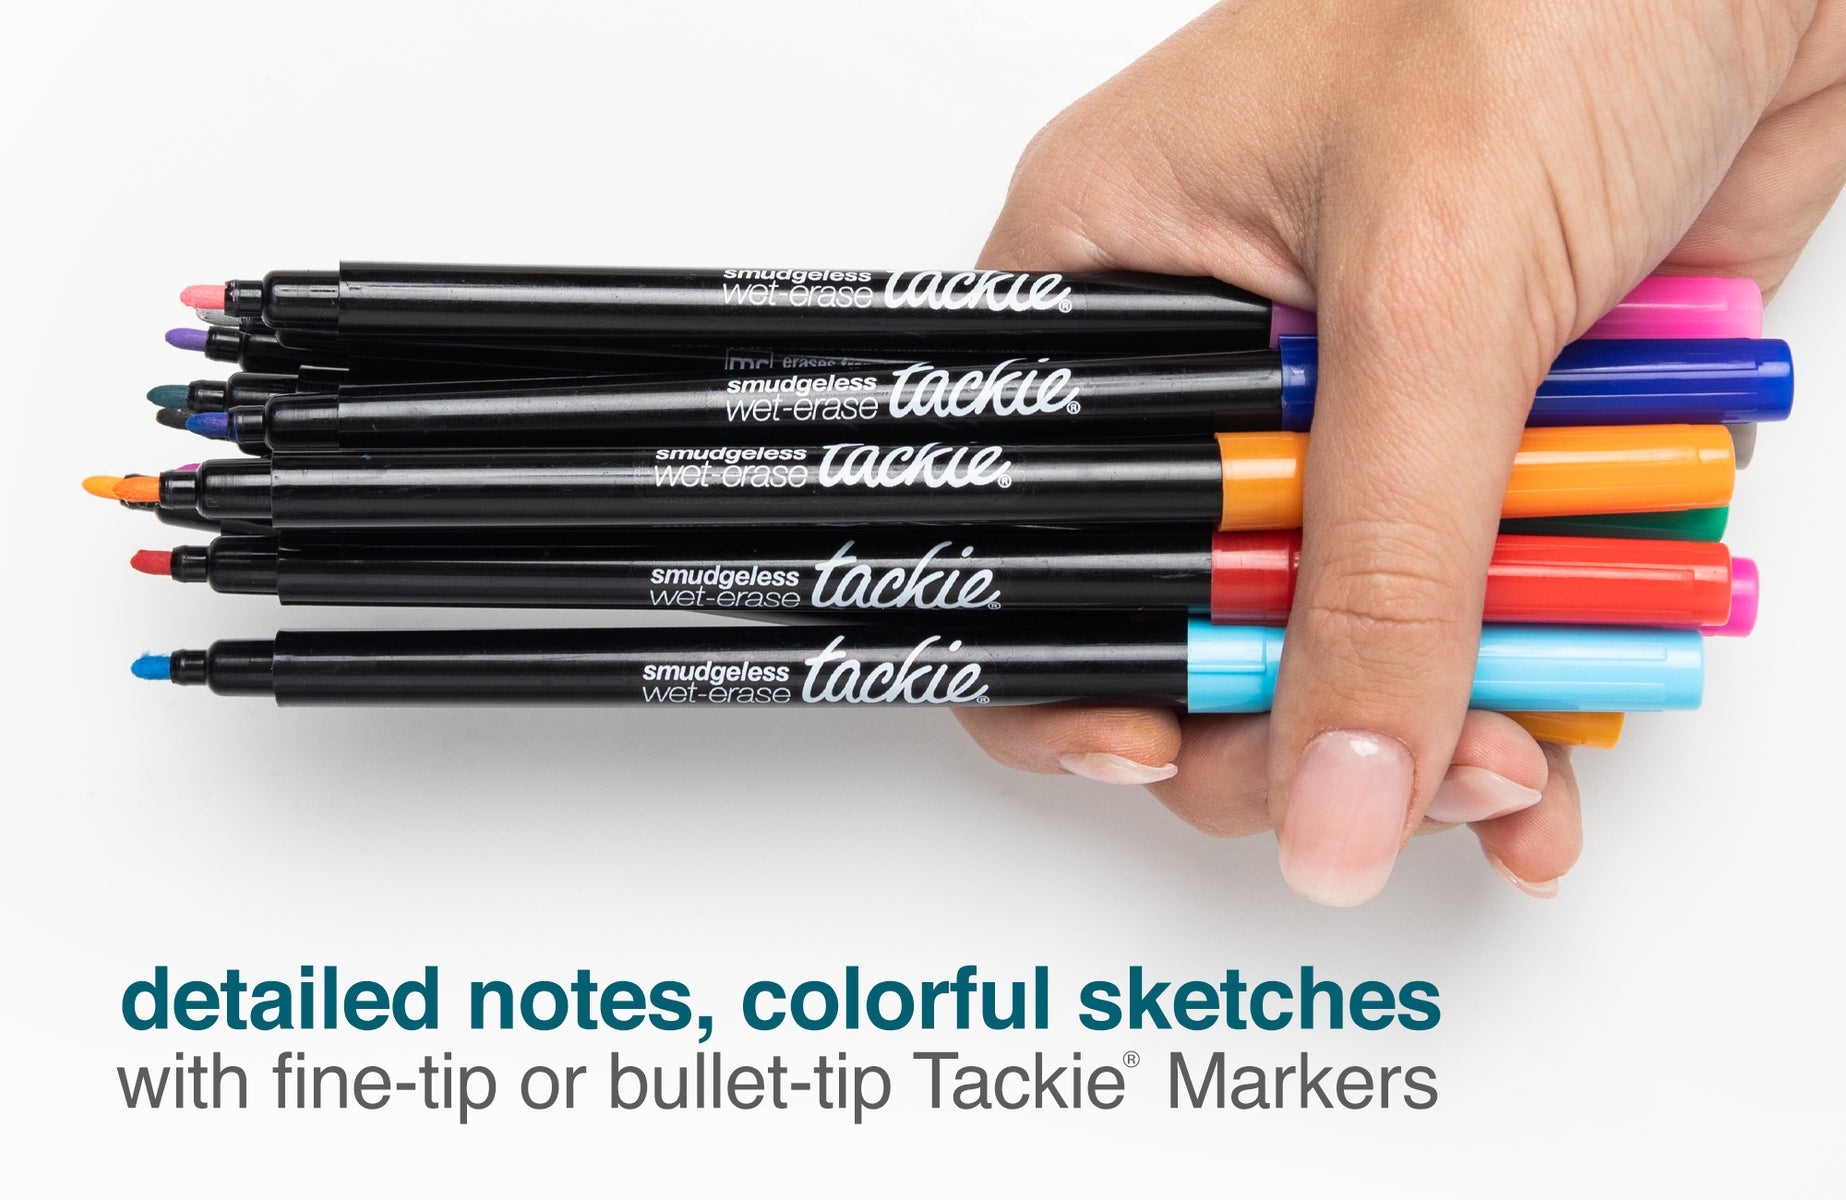 mcSquares Tackie Markers <br/> Smudge-Free Wet-Erase Markers